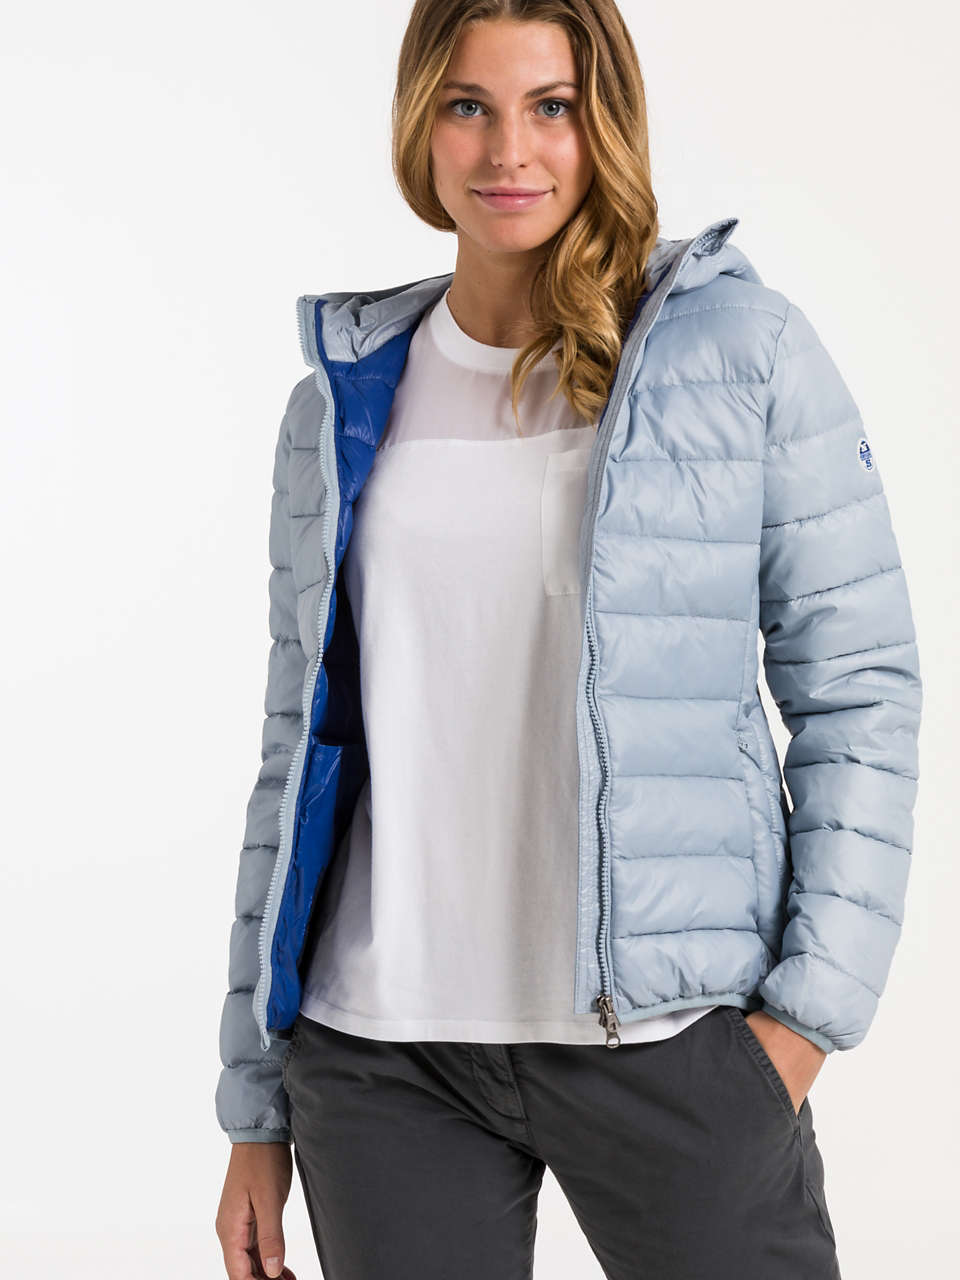 Super Light Hooded Jacket